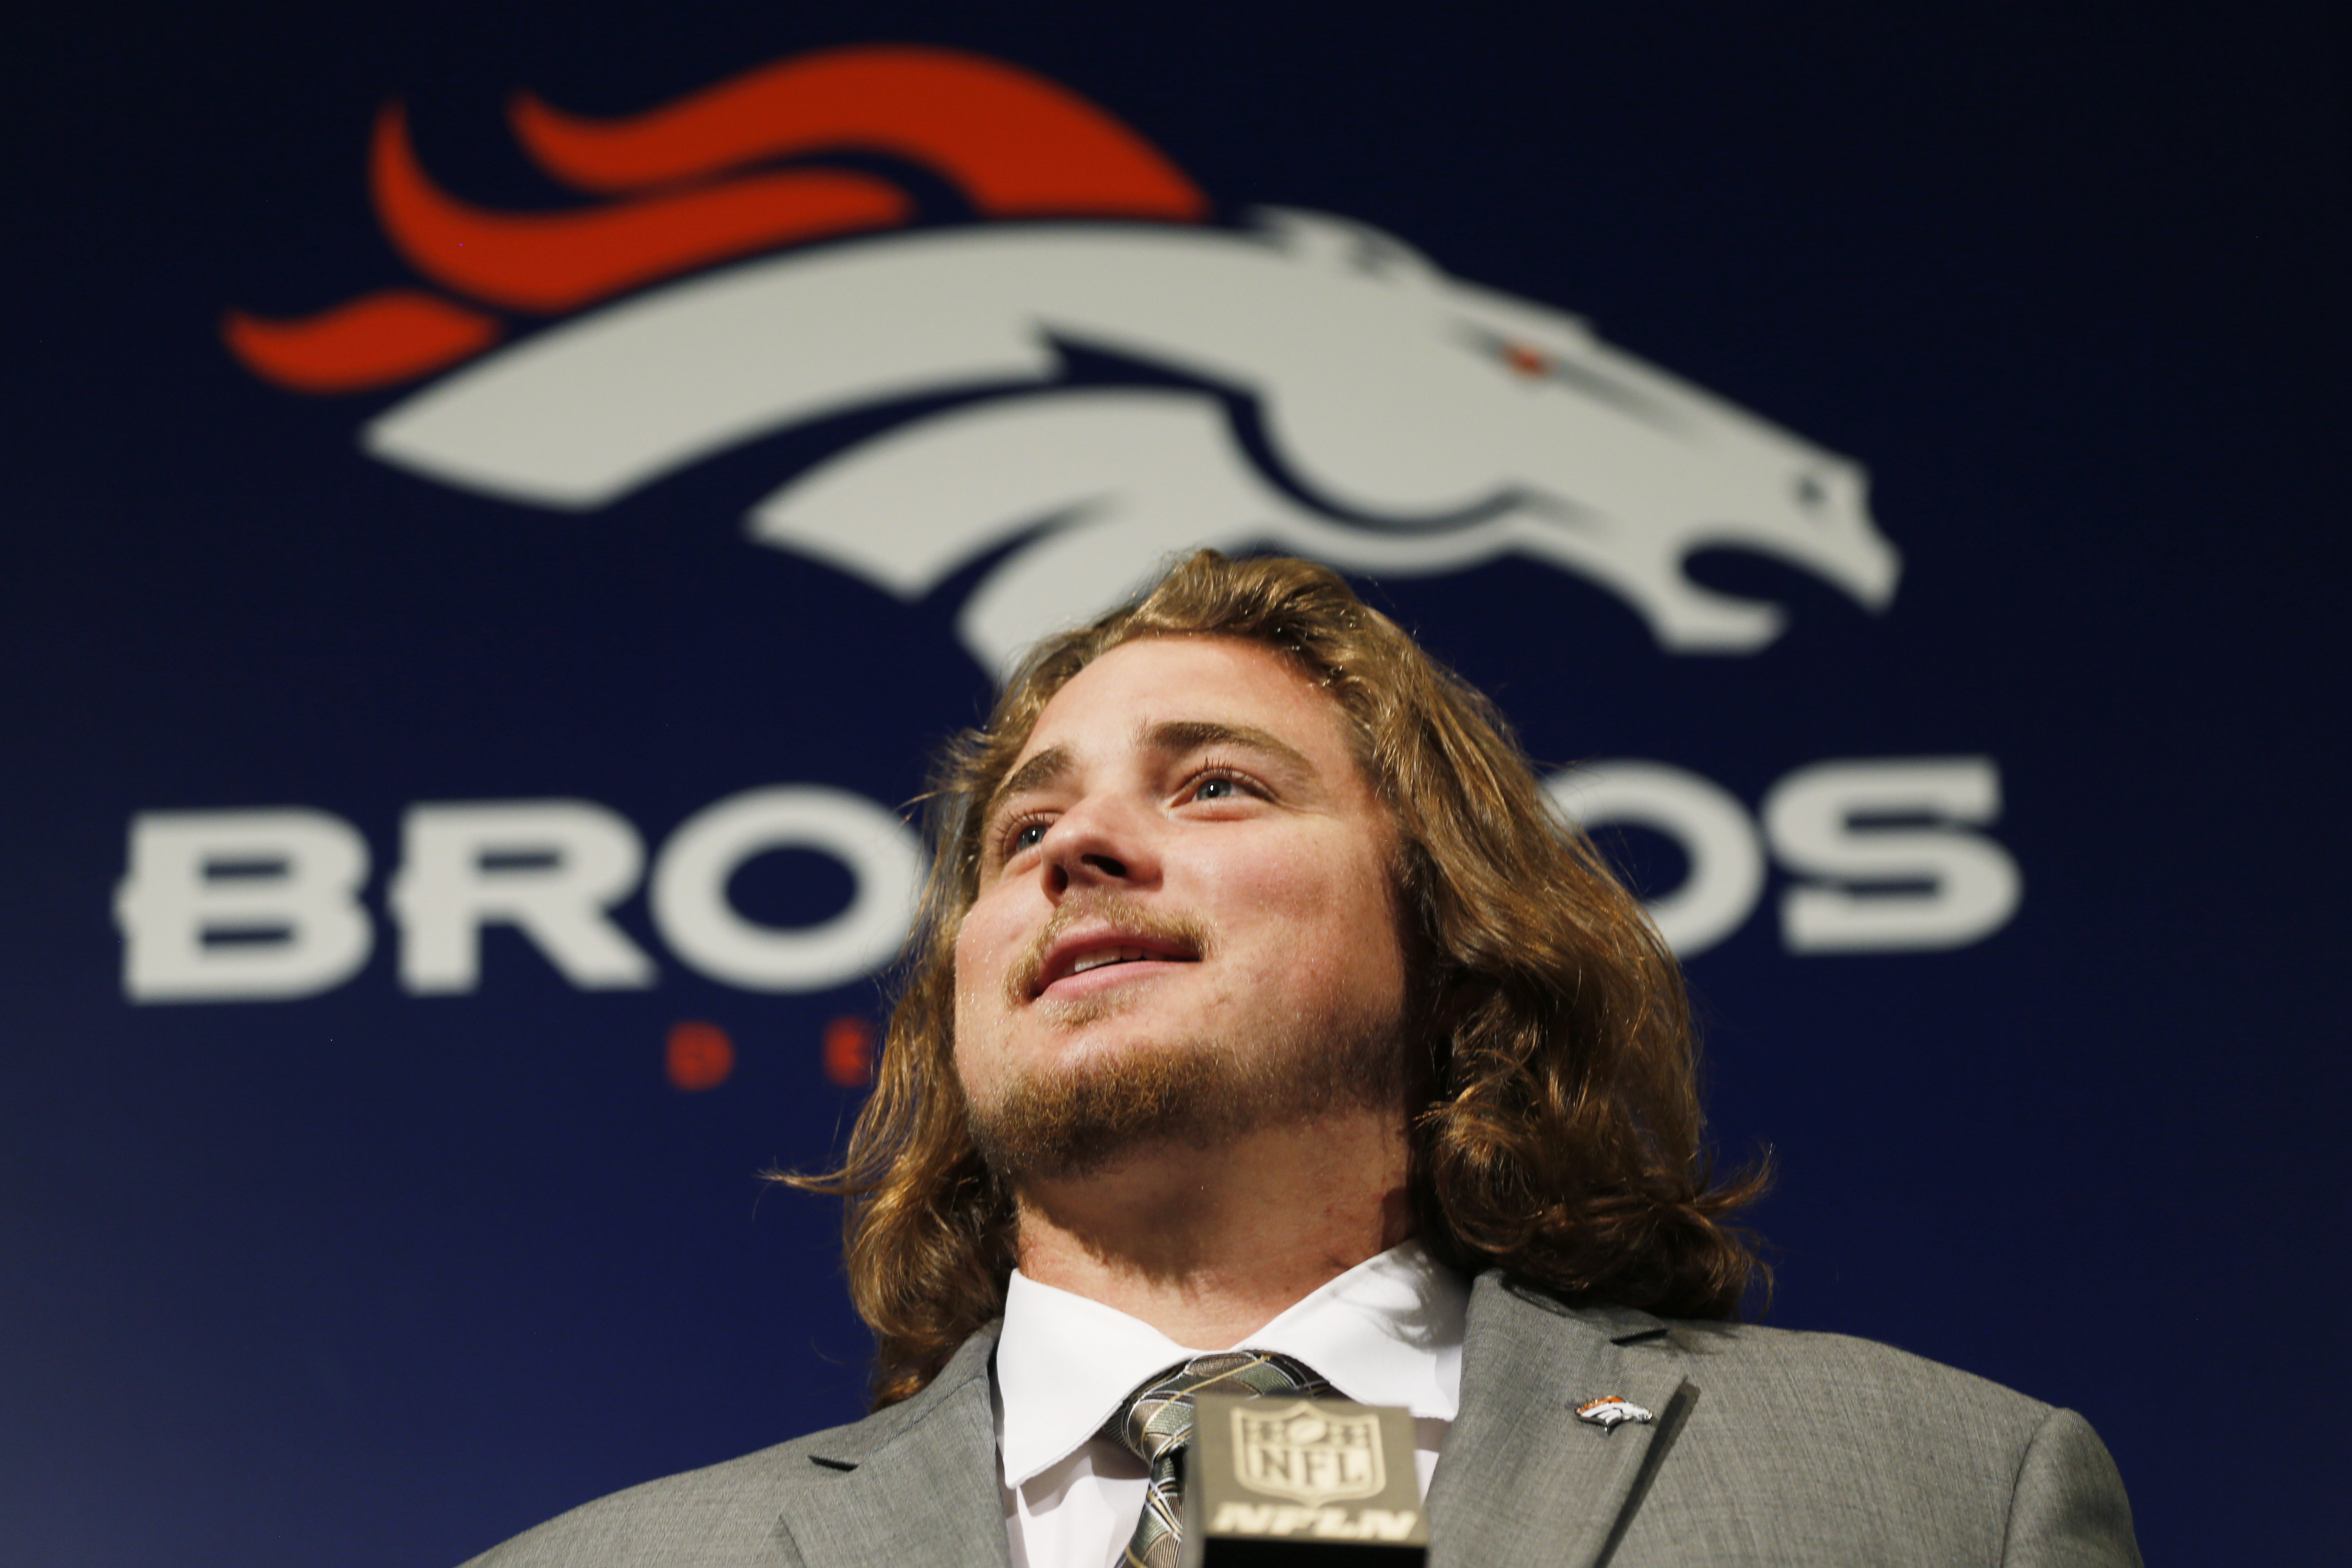 Former Colorado State offensive lineman Ty Sambrailo, the Denver Broncos second-round pick in the NFL Draft, talks during an NFL football news conference Saturday, May 2, 2015, in Englewood, Colo. (AP Photo/David Zalubowski)